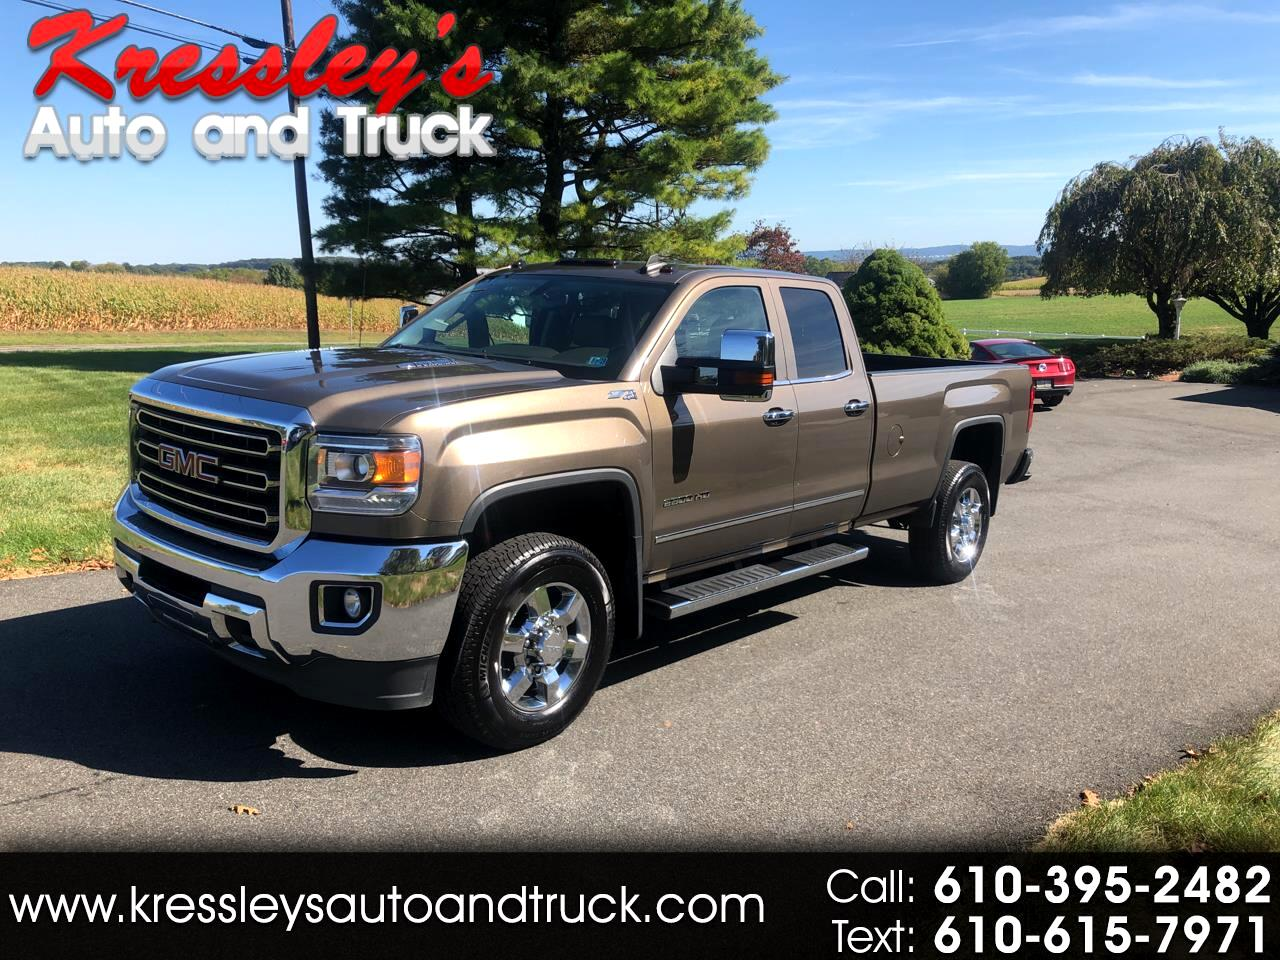 2015 GMC Sierra 2500HD available WiFi 4WD Double Cab 158.1